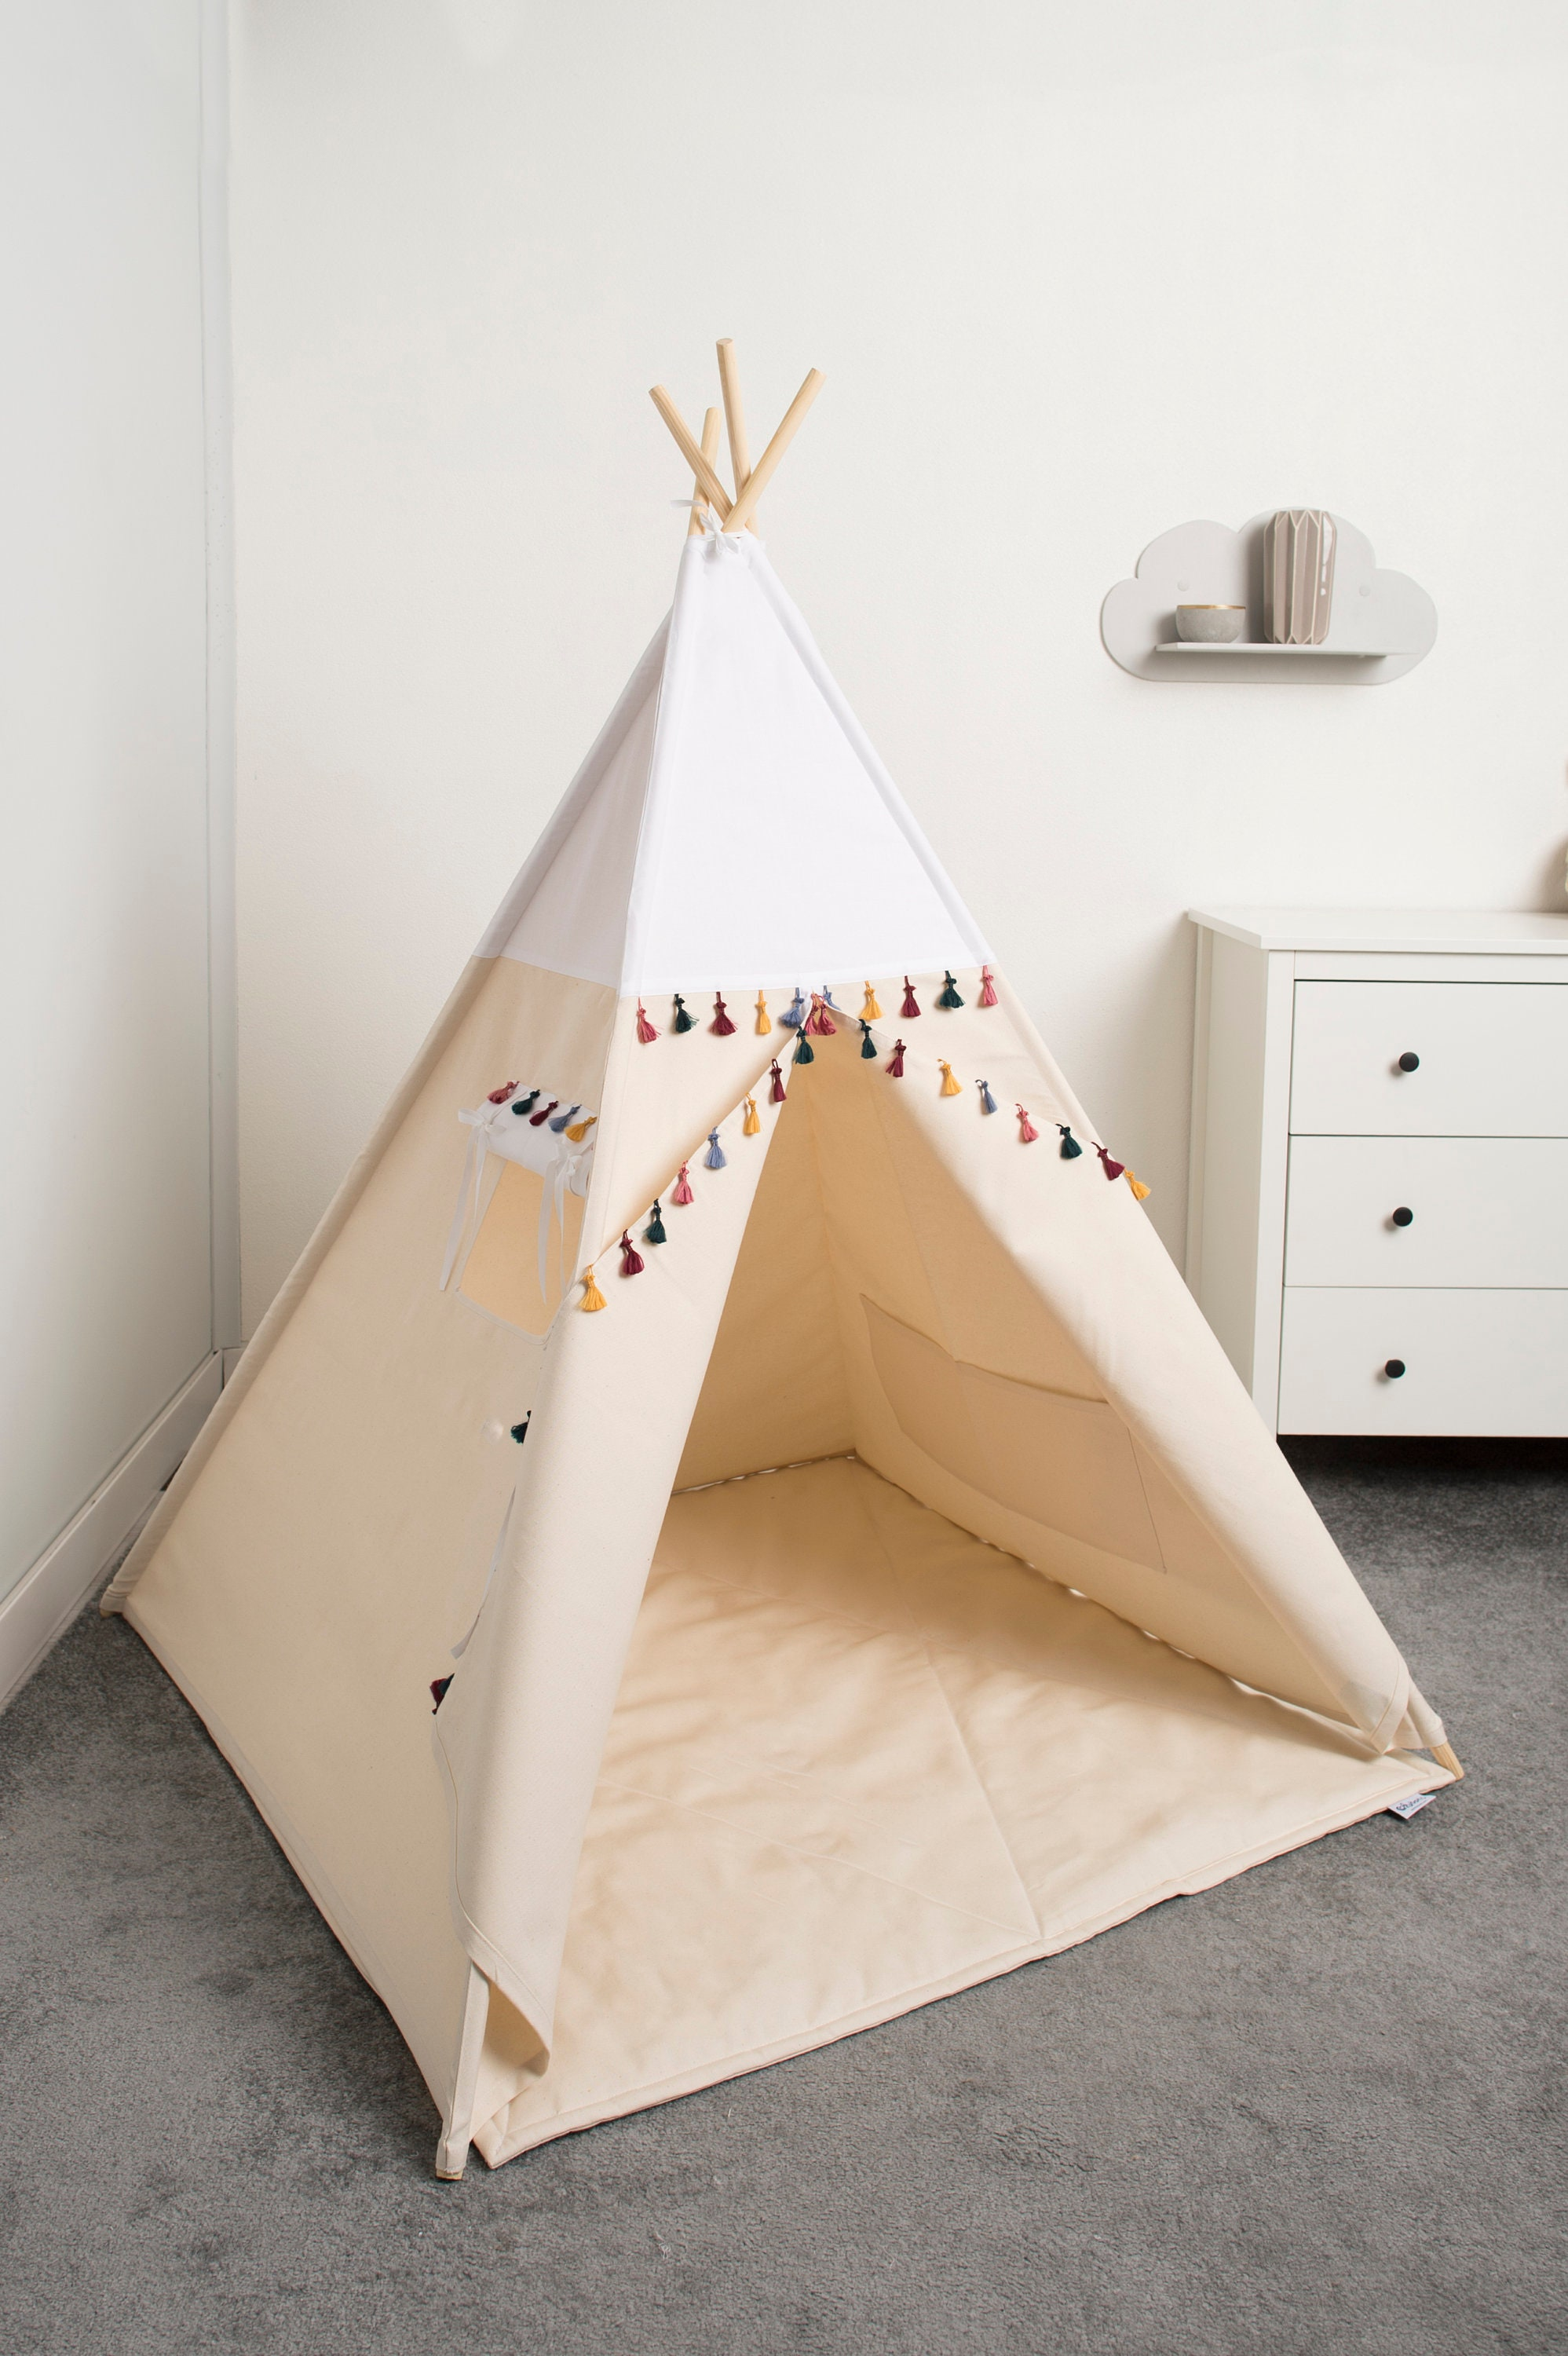 kinder tipi zelt spielen kinder zelt tipi tipi zelt satz etsy. Black Bedroom Furniture Sets. Home Design Ideas